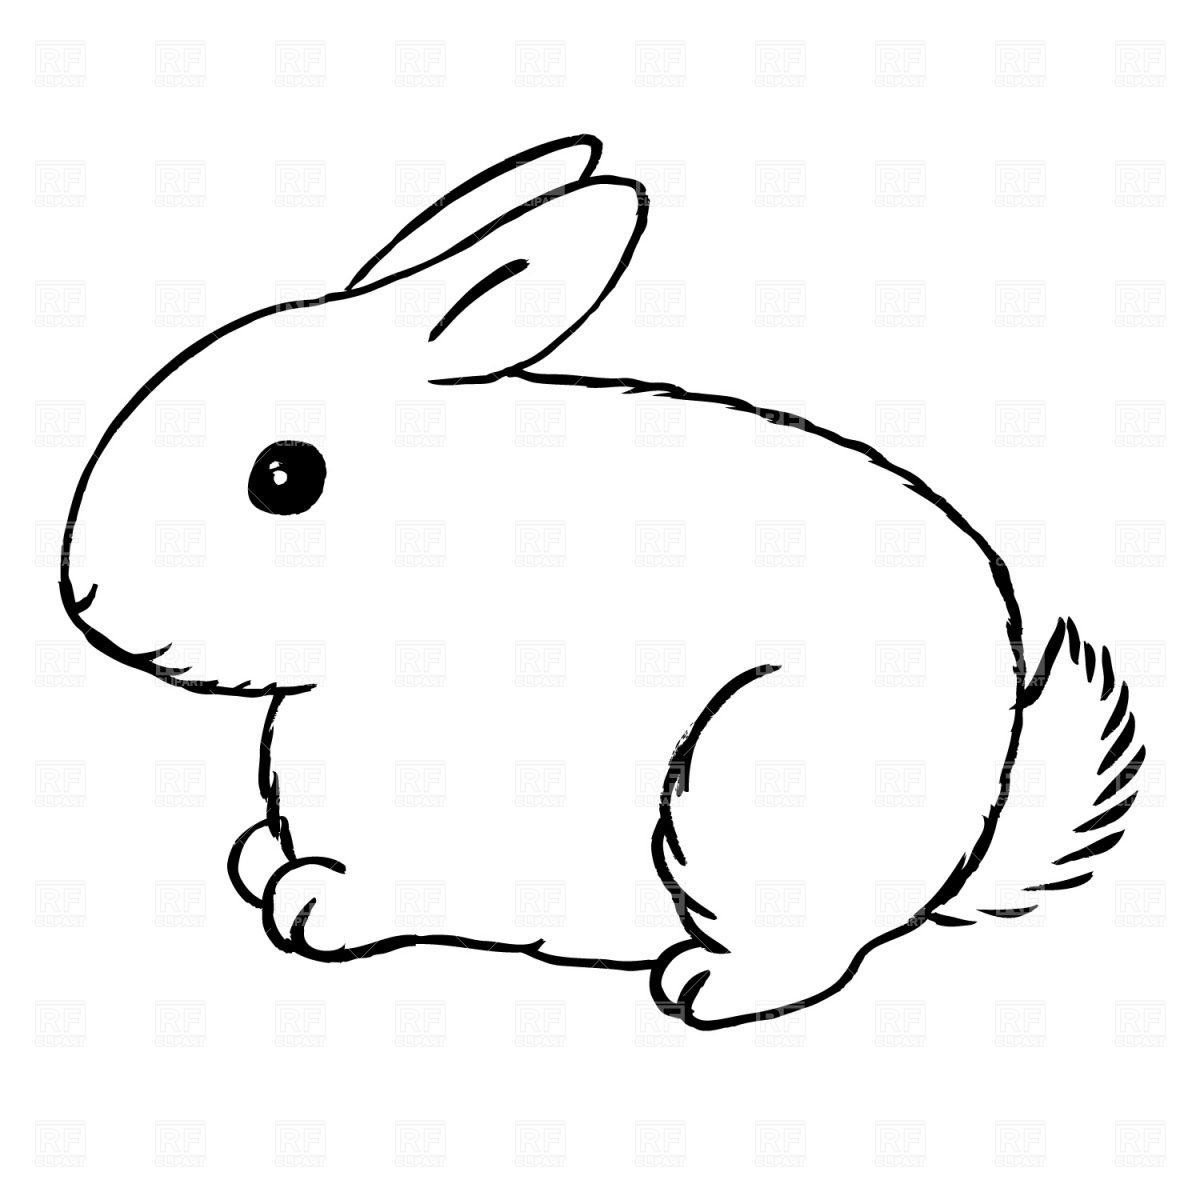 small resolution of drawings of rabbits and bunnies use these free images for your websites art projects reports and